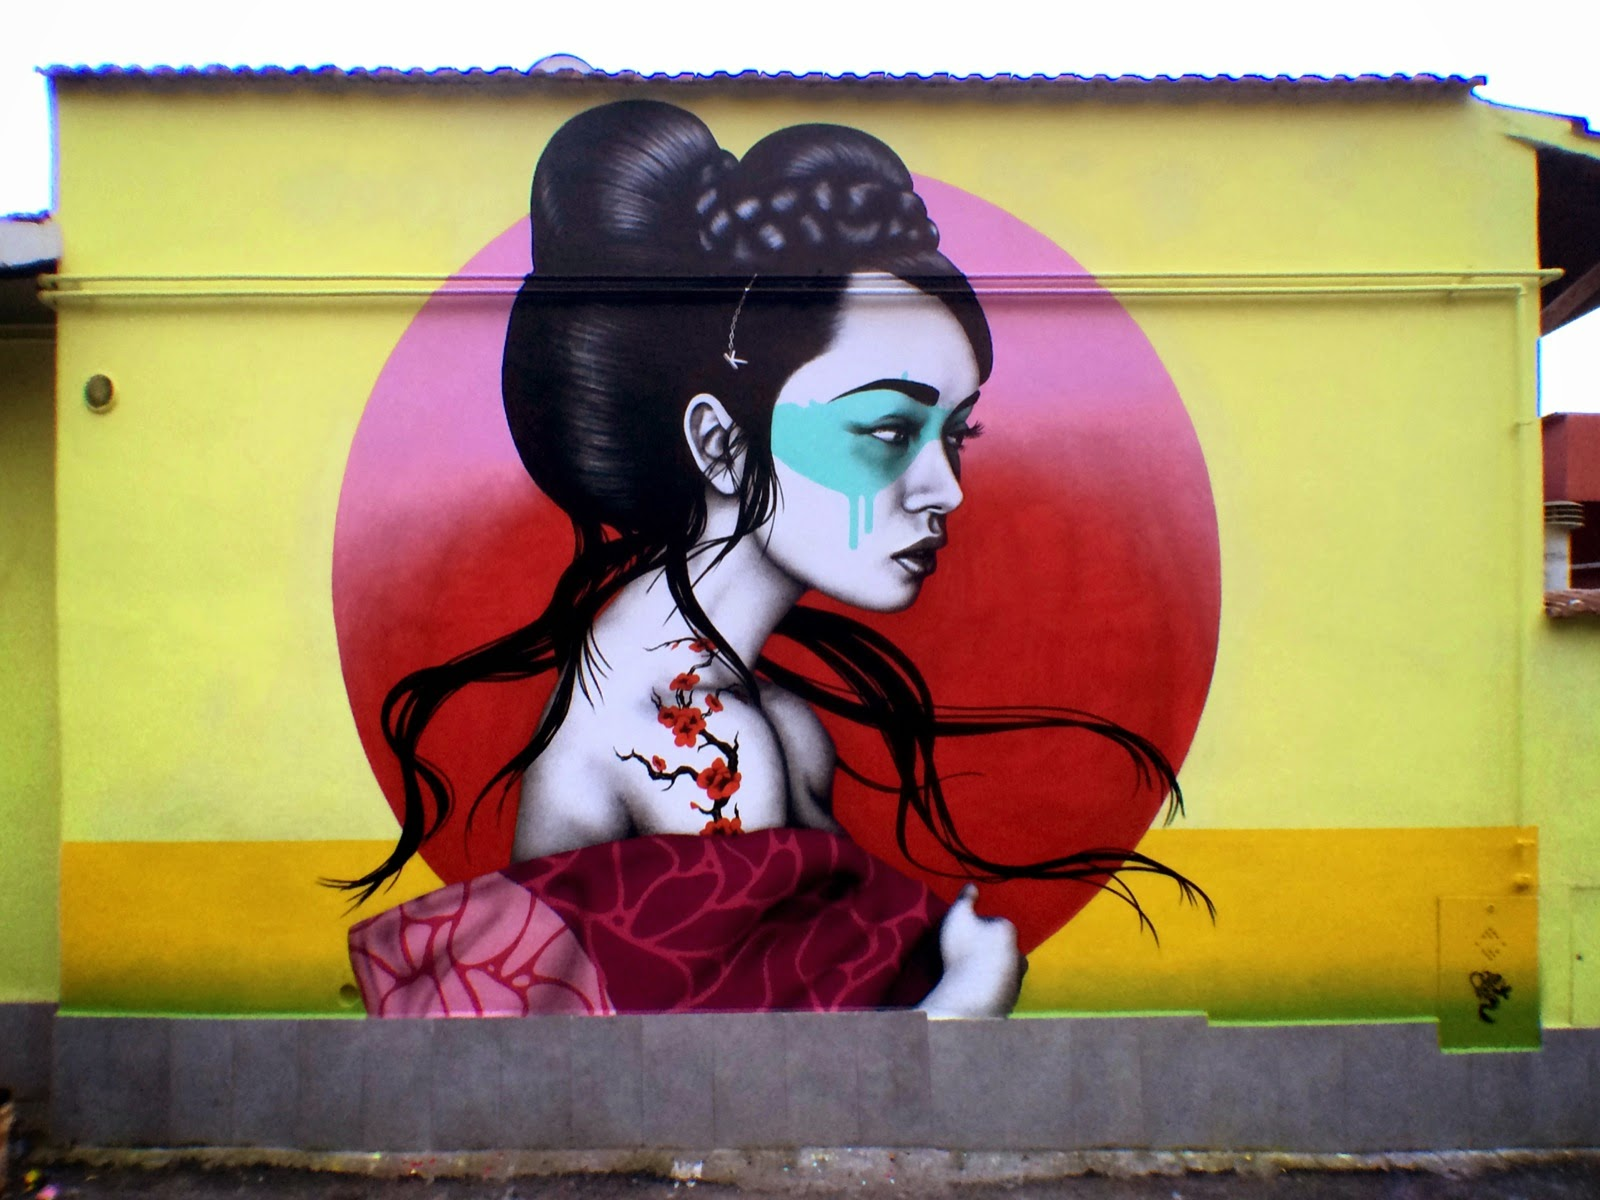 Fin DAC recently spent some time in the lovely city of Rome in Italy where he painted this new piece for the M.U.R.O Project (Museo Urban di Roma).